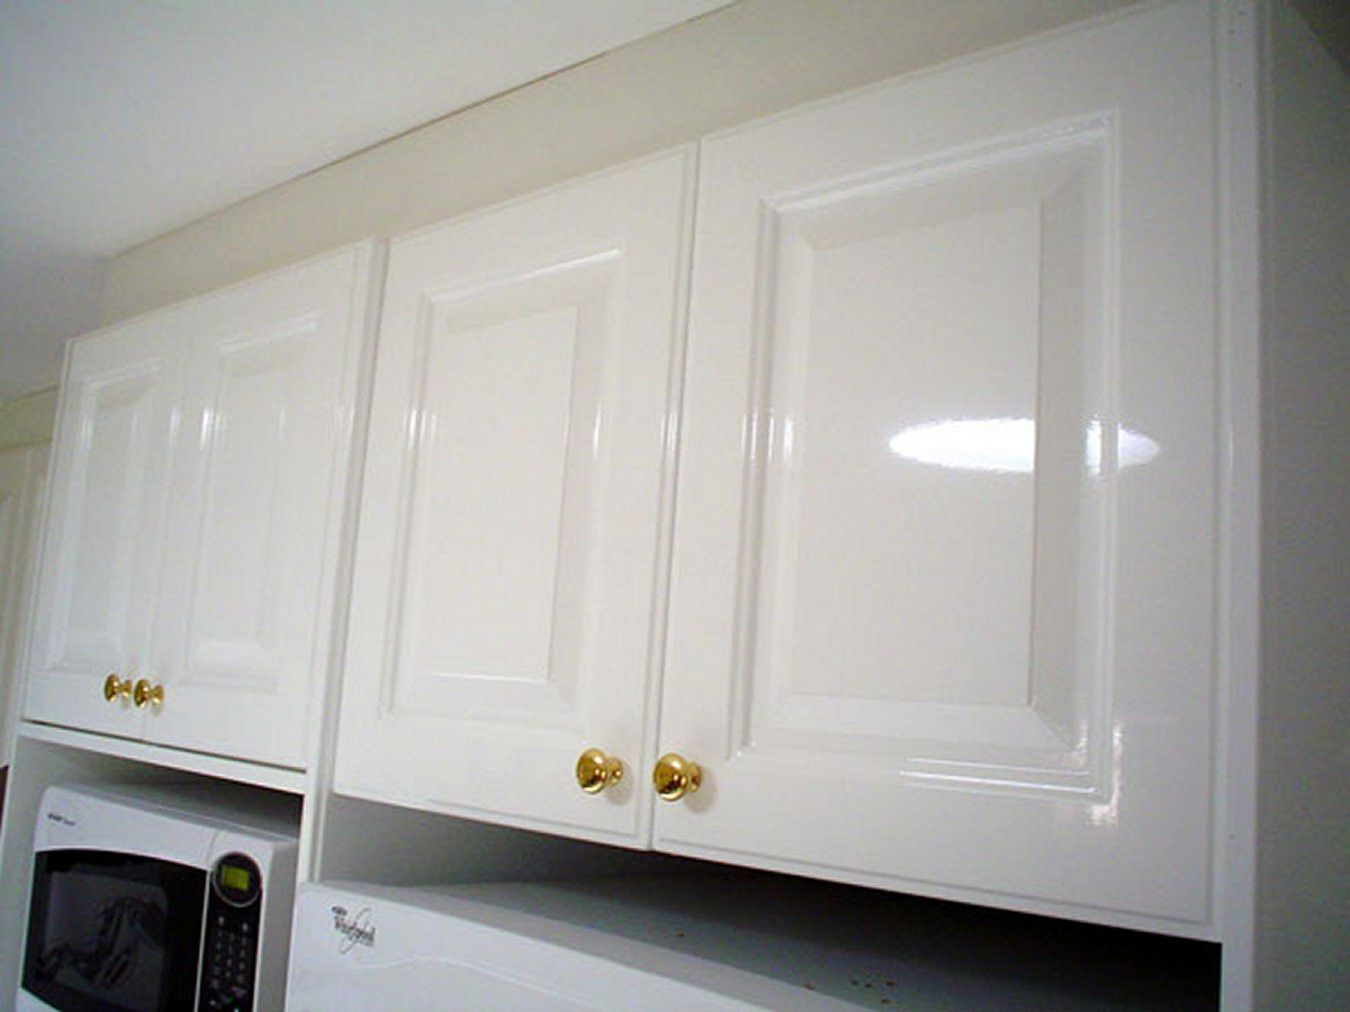 mdf cabinet doors. 2018 Routing Mdf Cabinet Doors - Apartment Kitchen Ideas Check More At Http:/ E